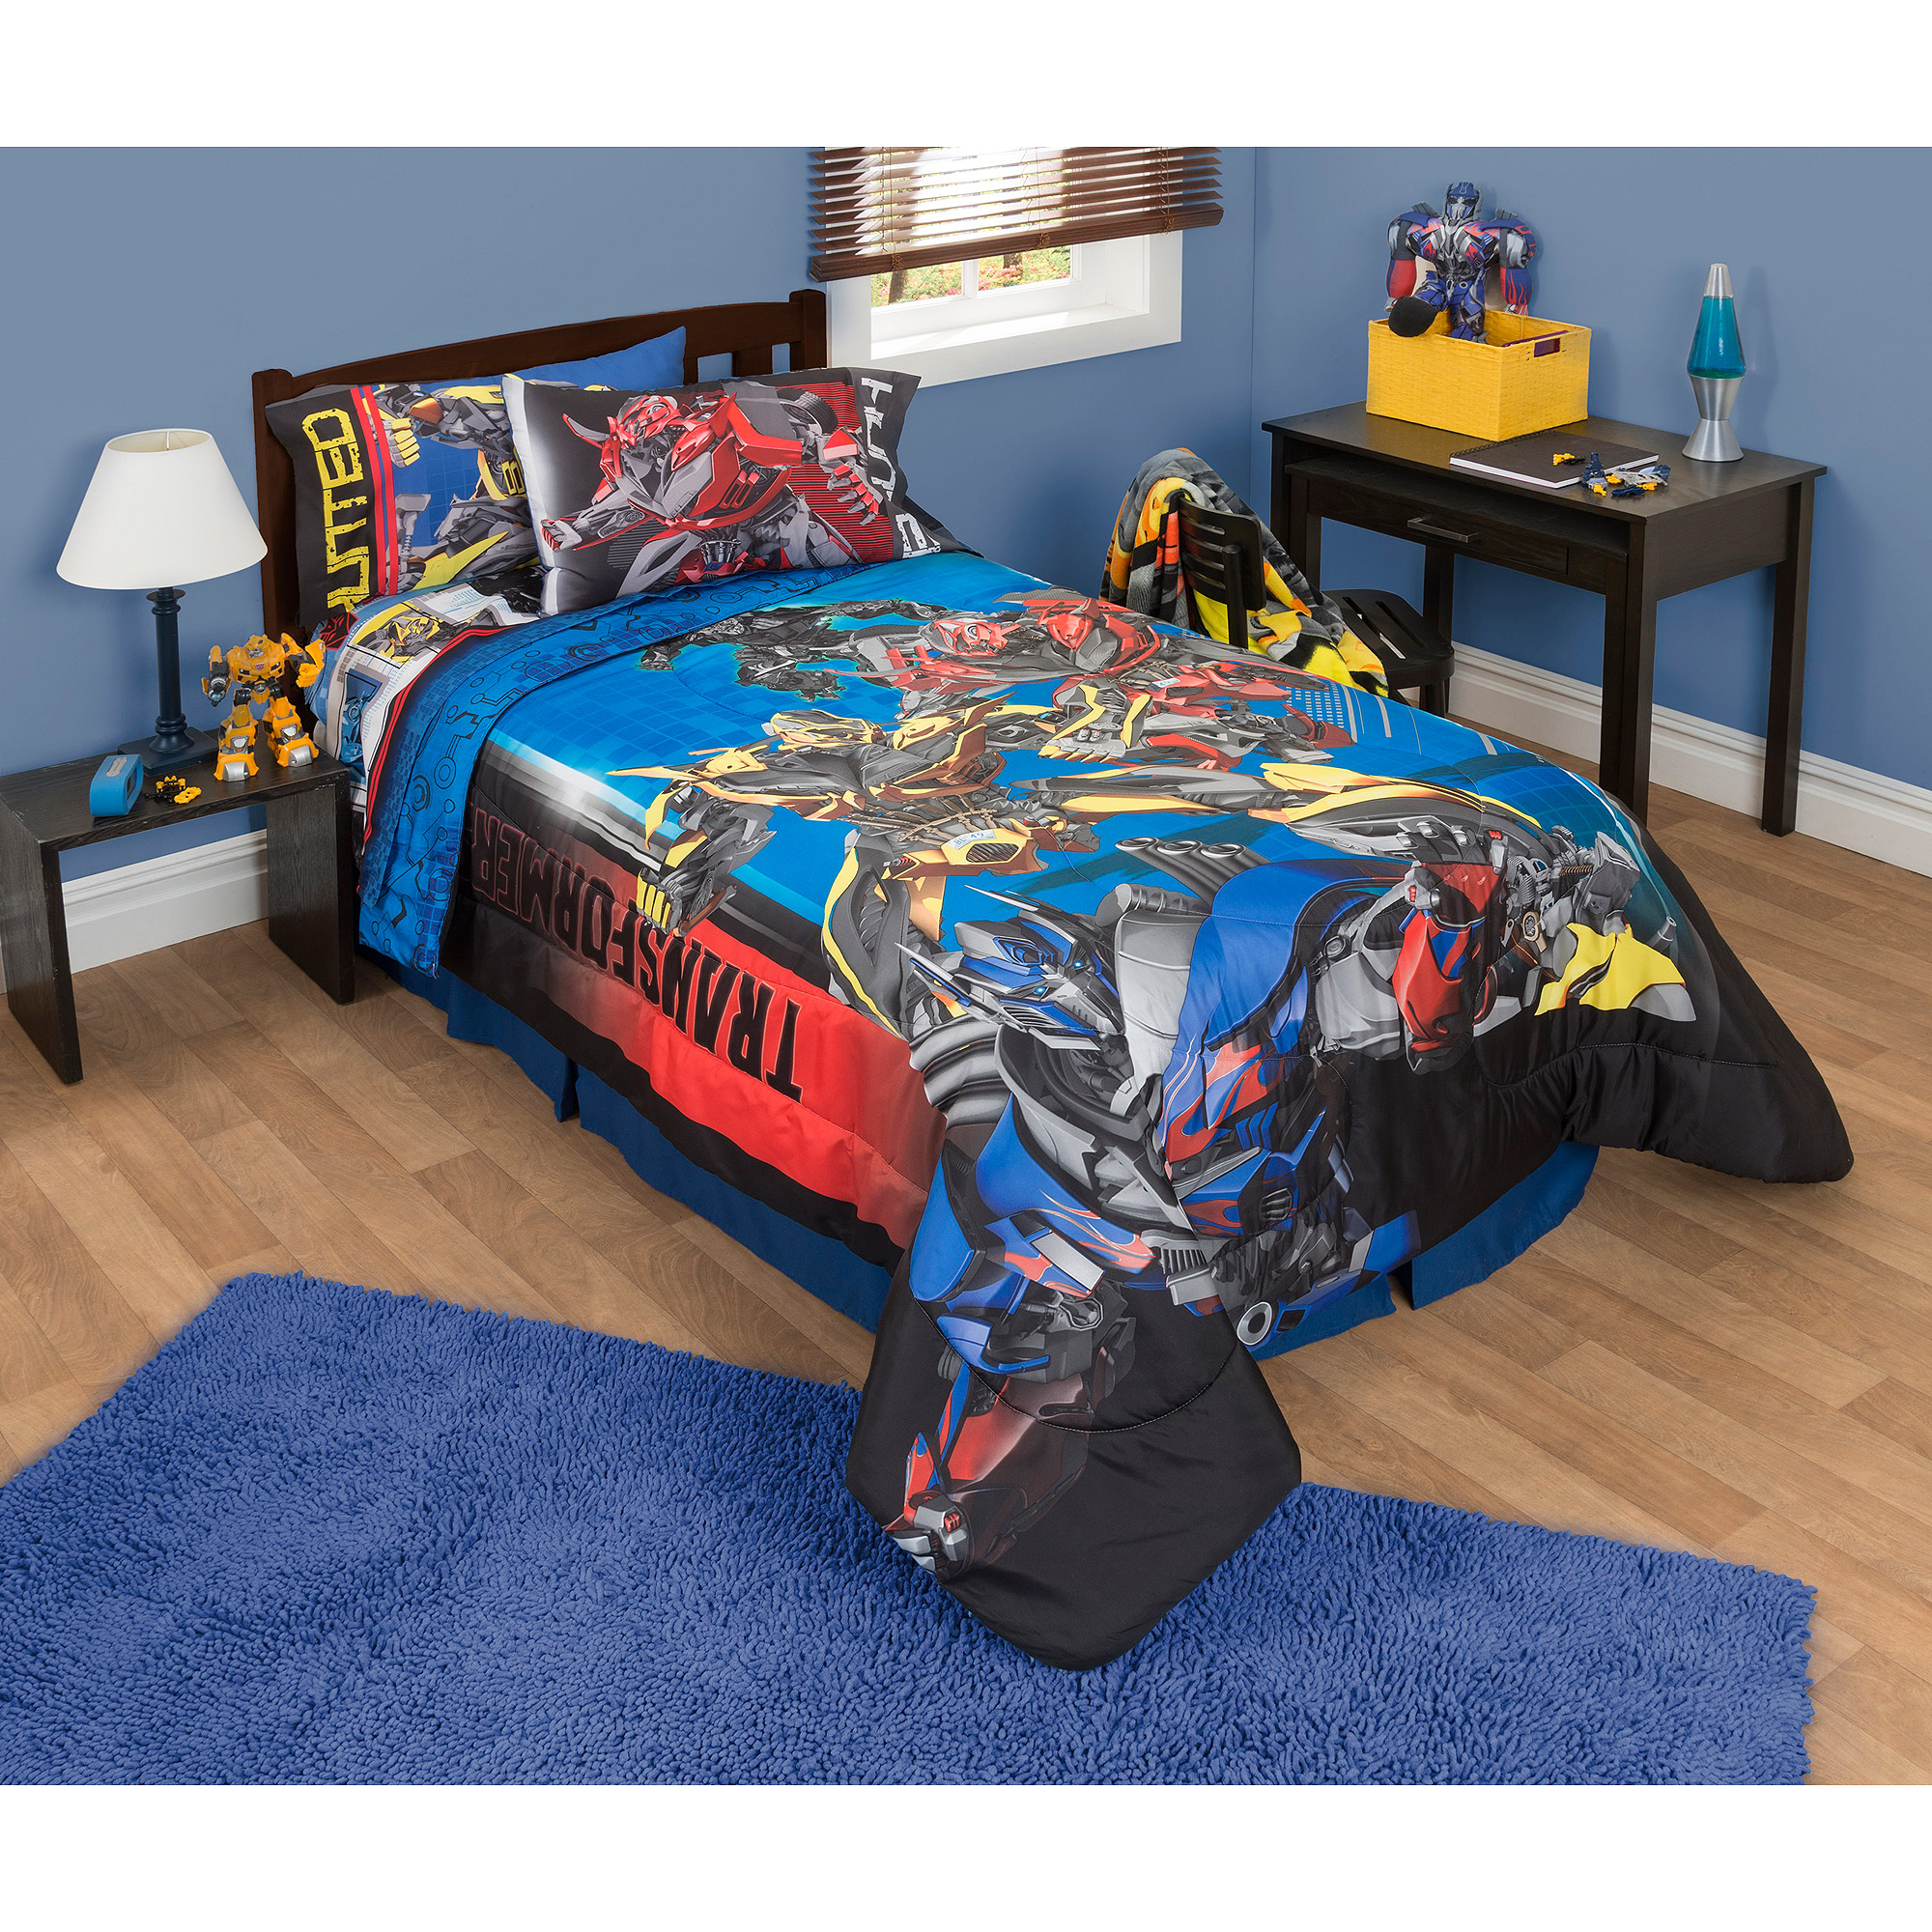 Amazing Transformers 4 Battle Royale Twin/Full Reversible Comforter, Blue    Walmart.com